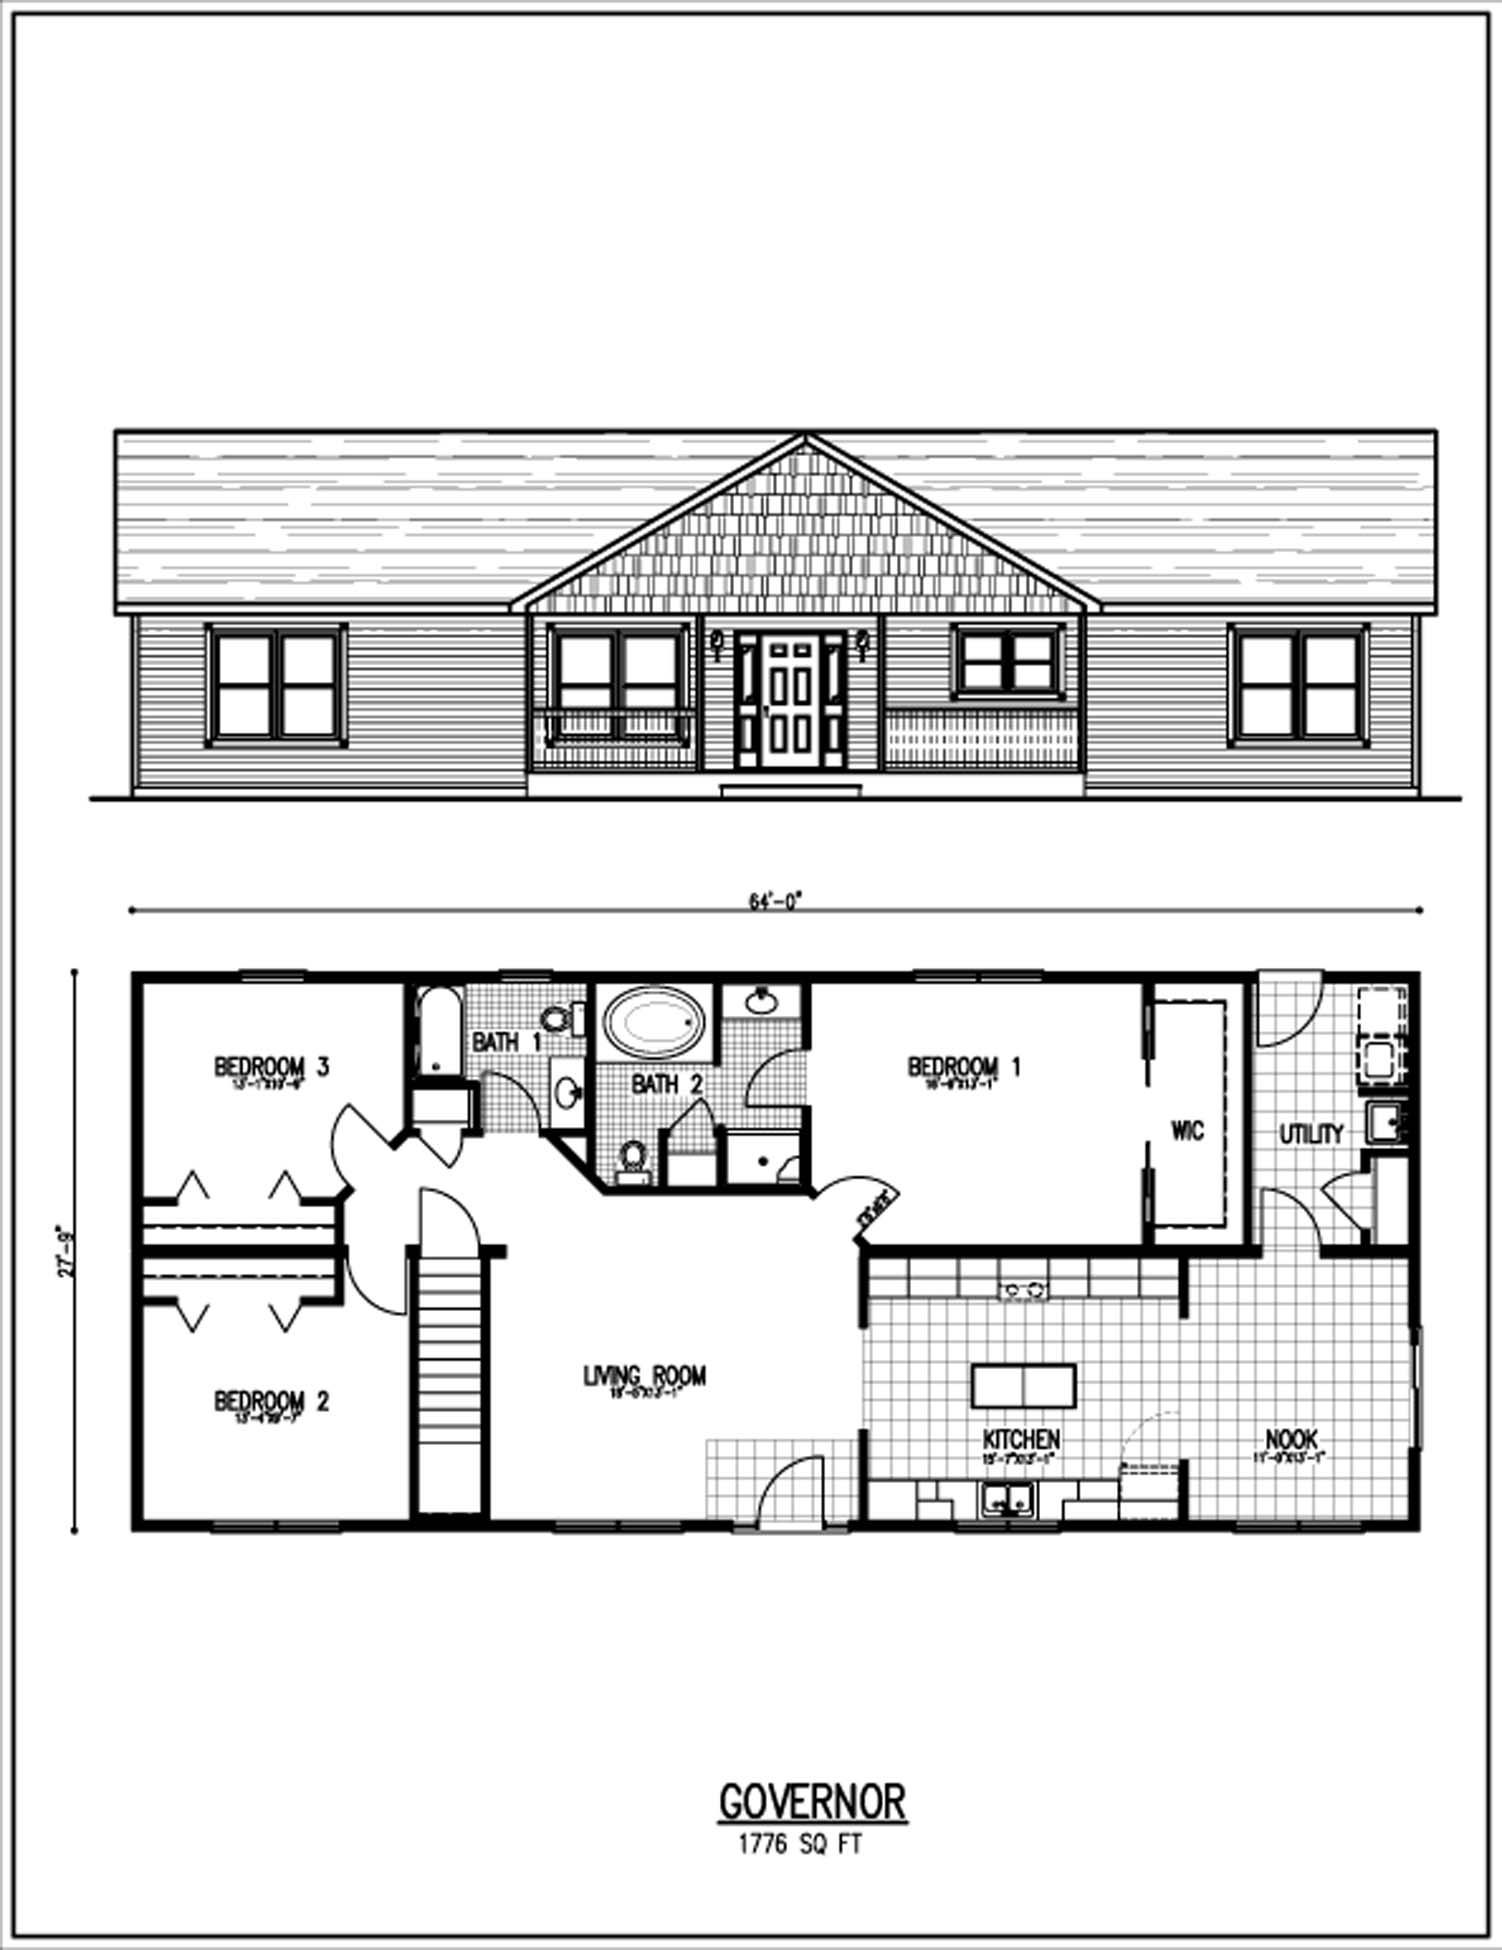 Floor plans by shawam082498 on pinterest floor plans for Ranch house blueprints